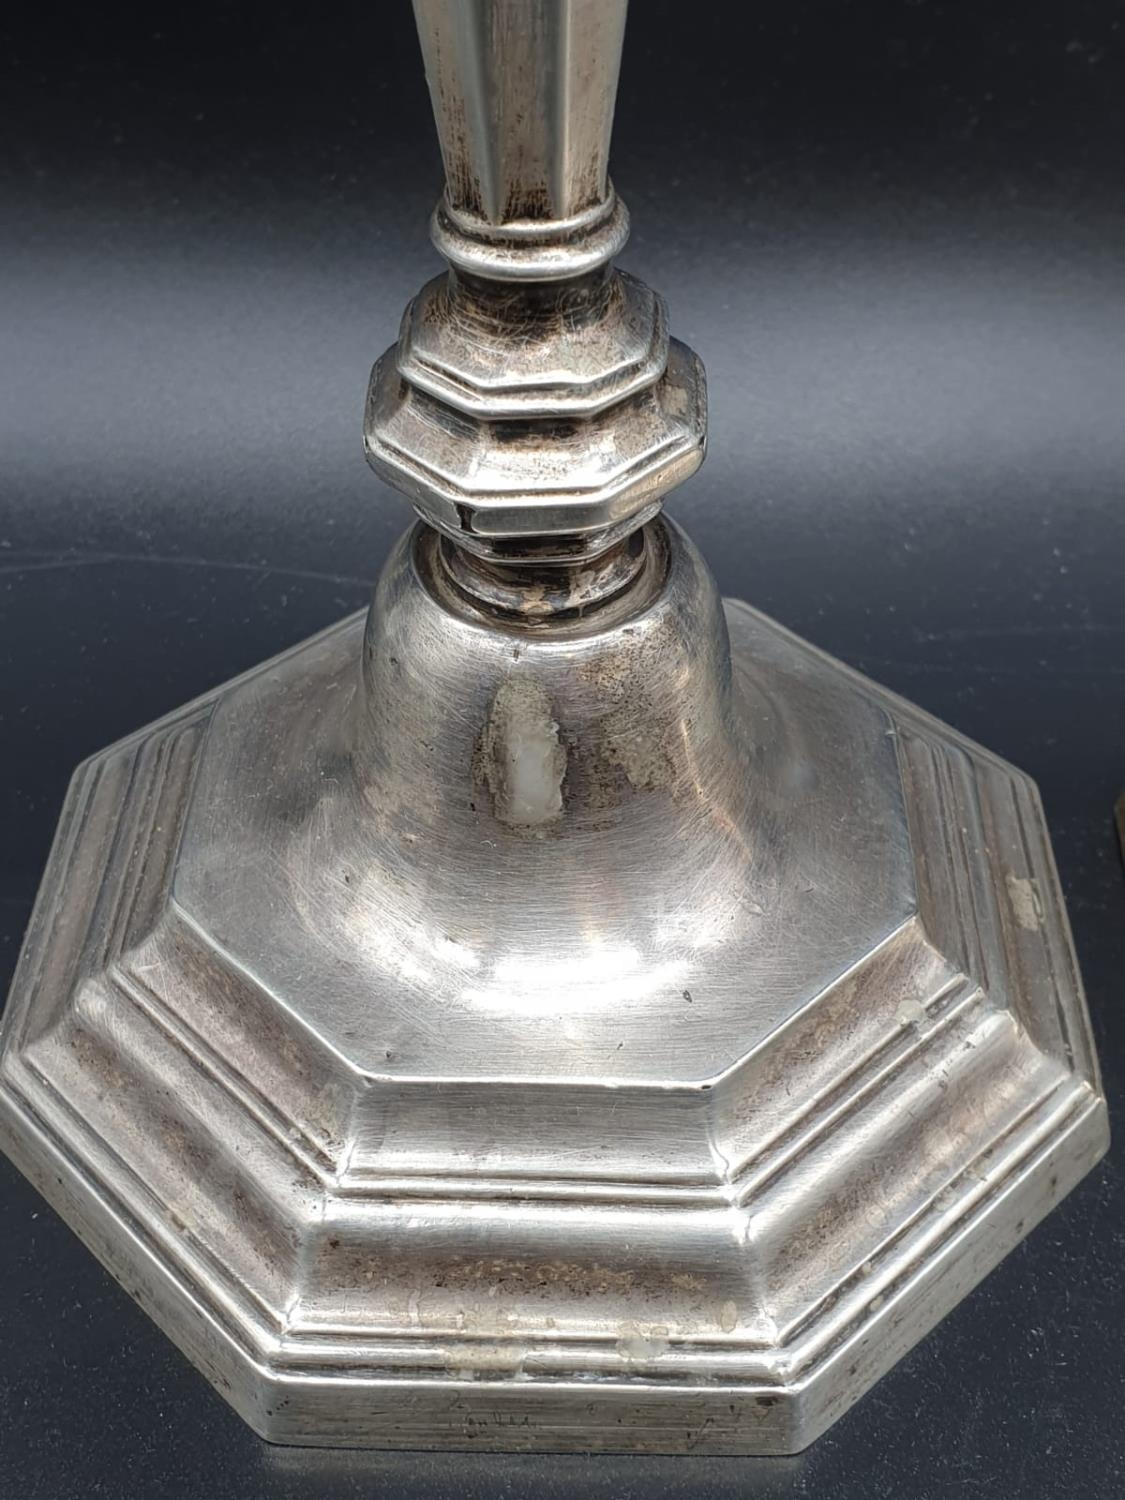 A Pair of Silver Candlesticks in Art Deco Style 23cms tall 1.6kg - Image 4 of 5